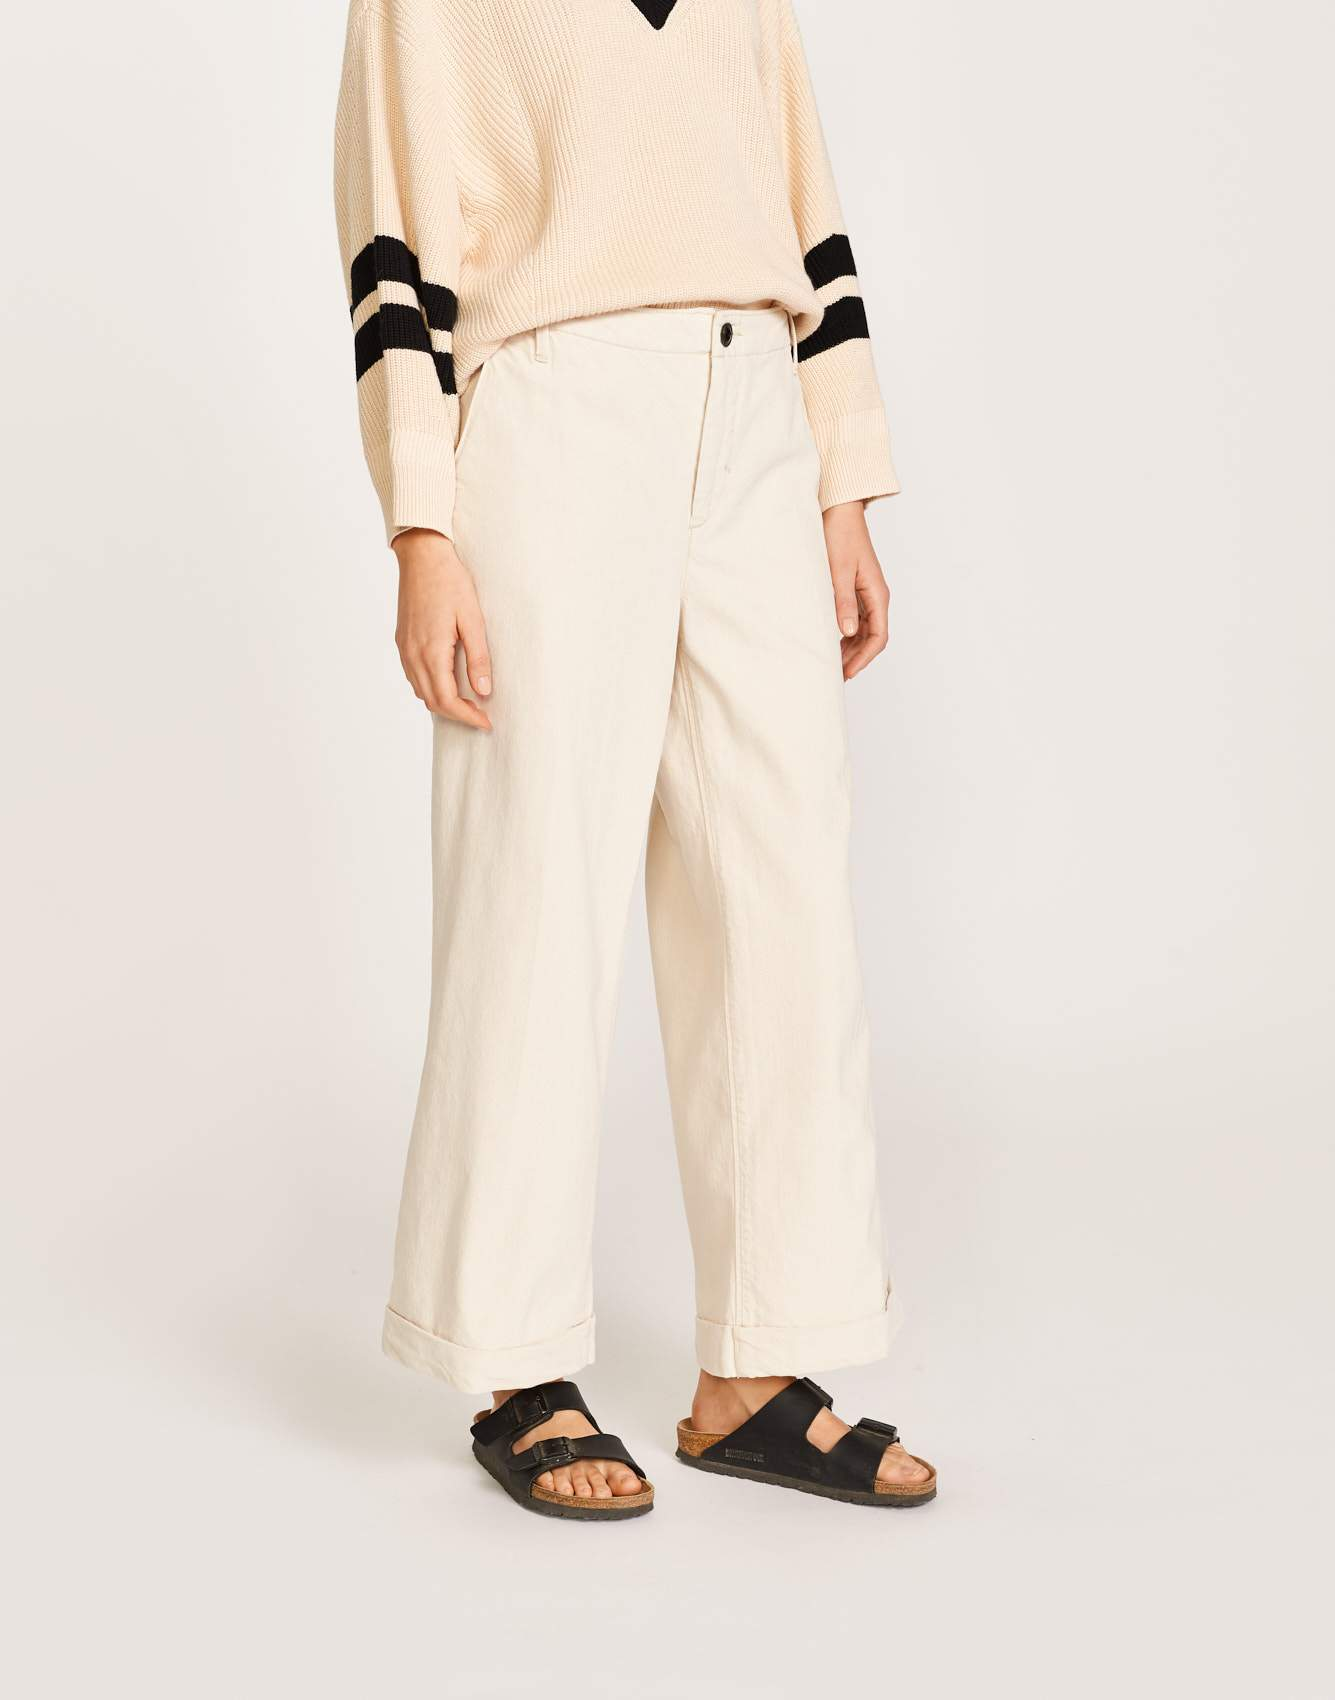 Bellerose white cotton chino pants for women